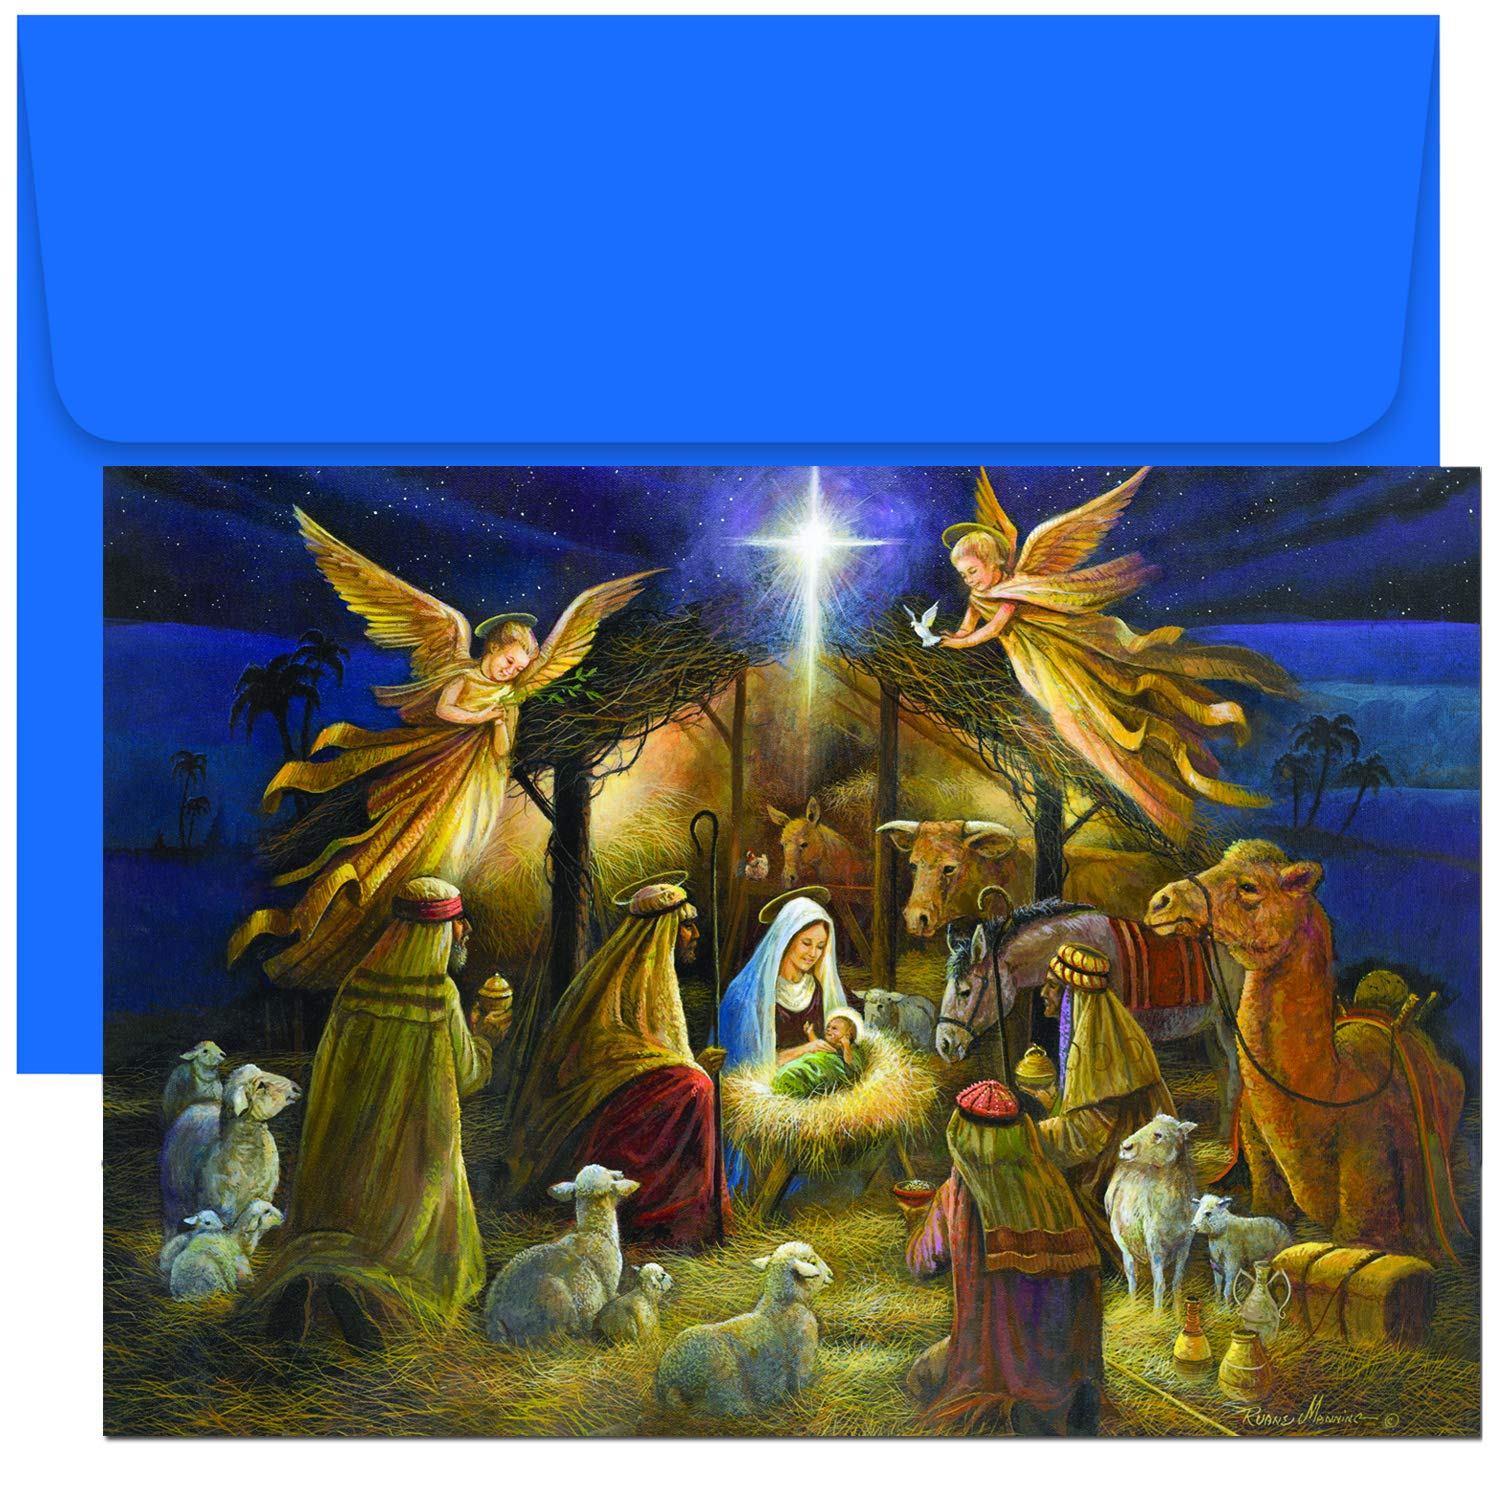 Masterpiece Studios Holiday Collection Boxed Christmas Cards, Holy Family in Stable, 18 Cards/18 Foil-Lined Envelopes Sourced Inc. 903800